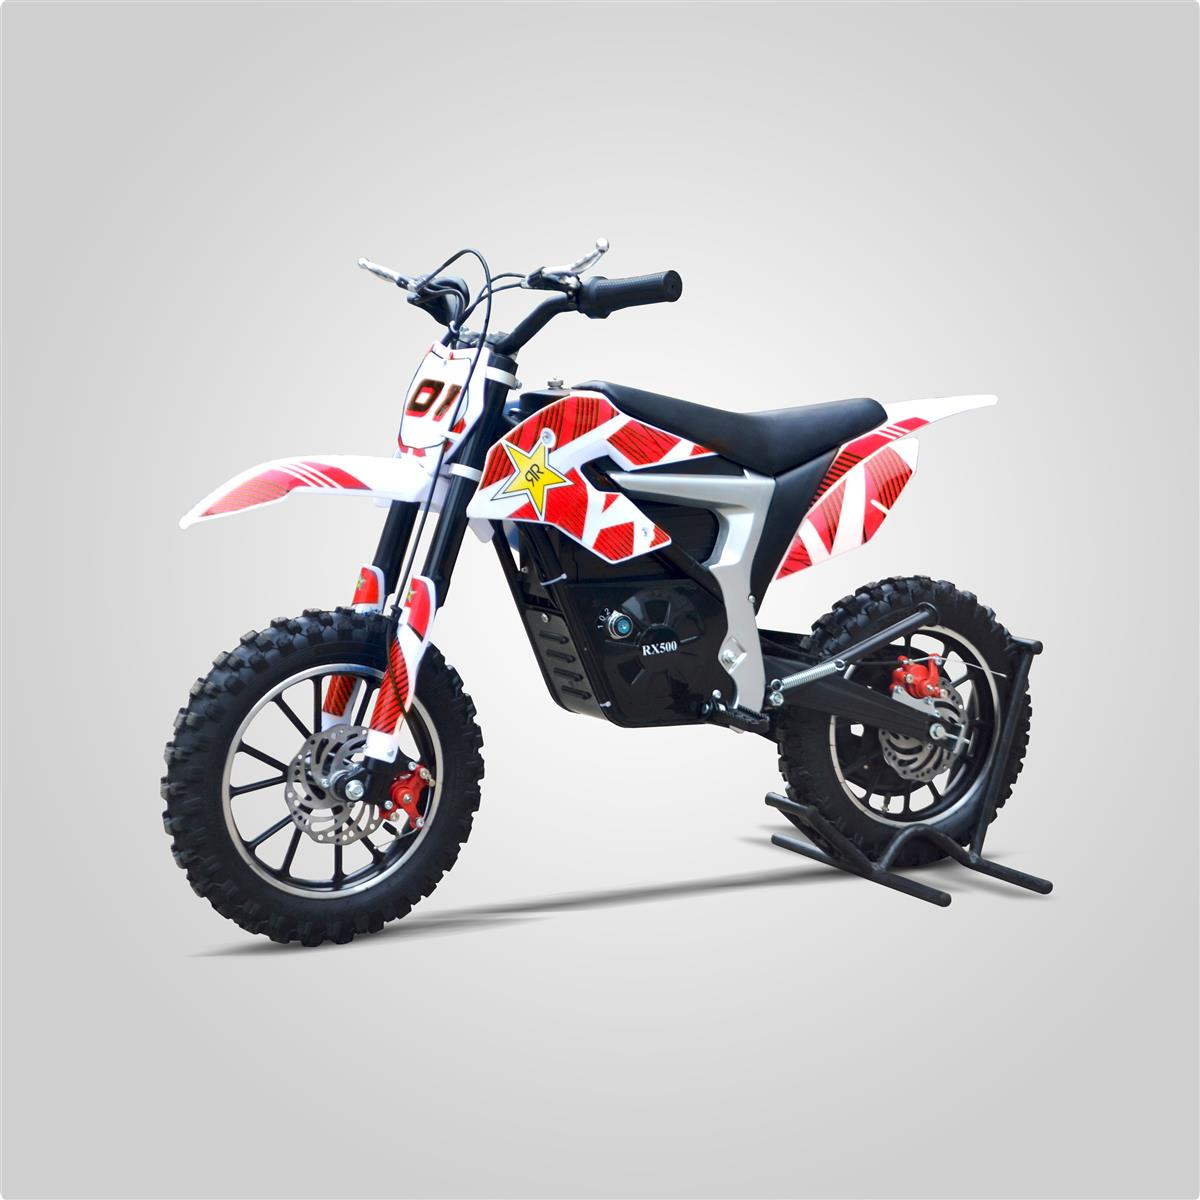 pocket cross rx 500w rouge mod le lectrique smallmx dirt bike pit bike quads minimoto. Black Bedroom Furniture Sets. Home Design Ideas